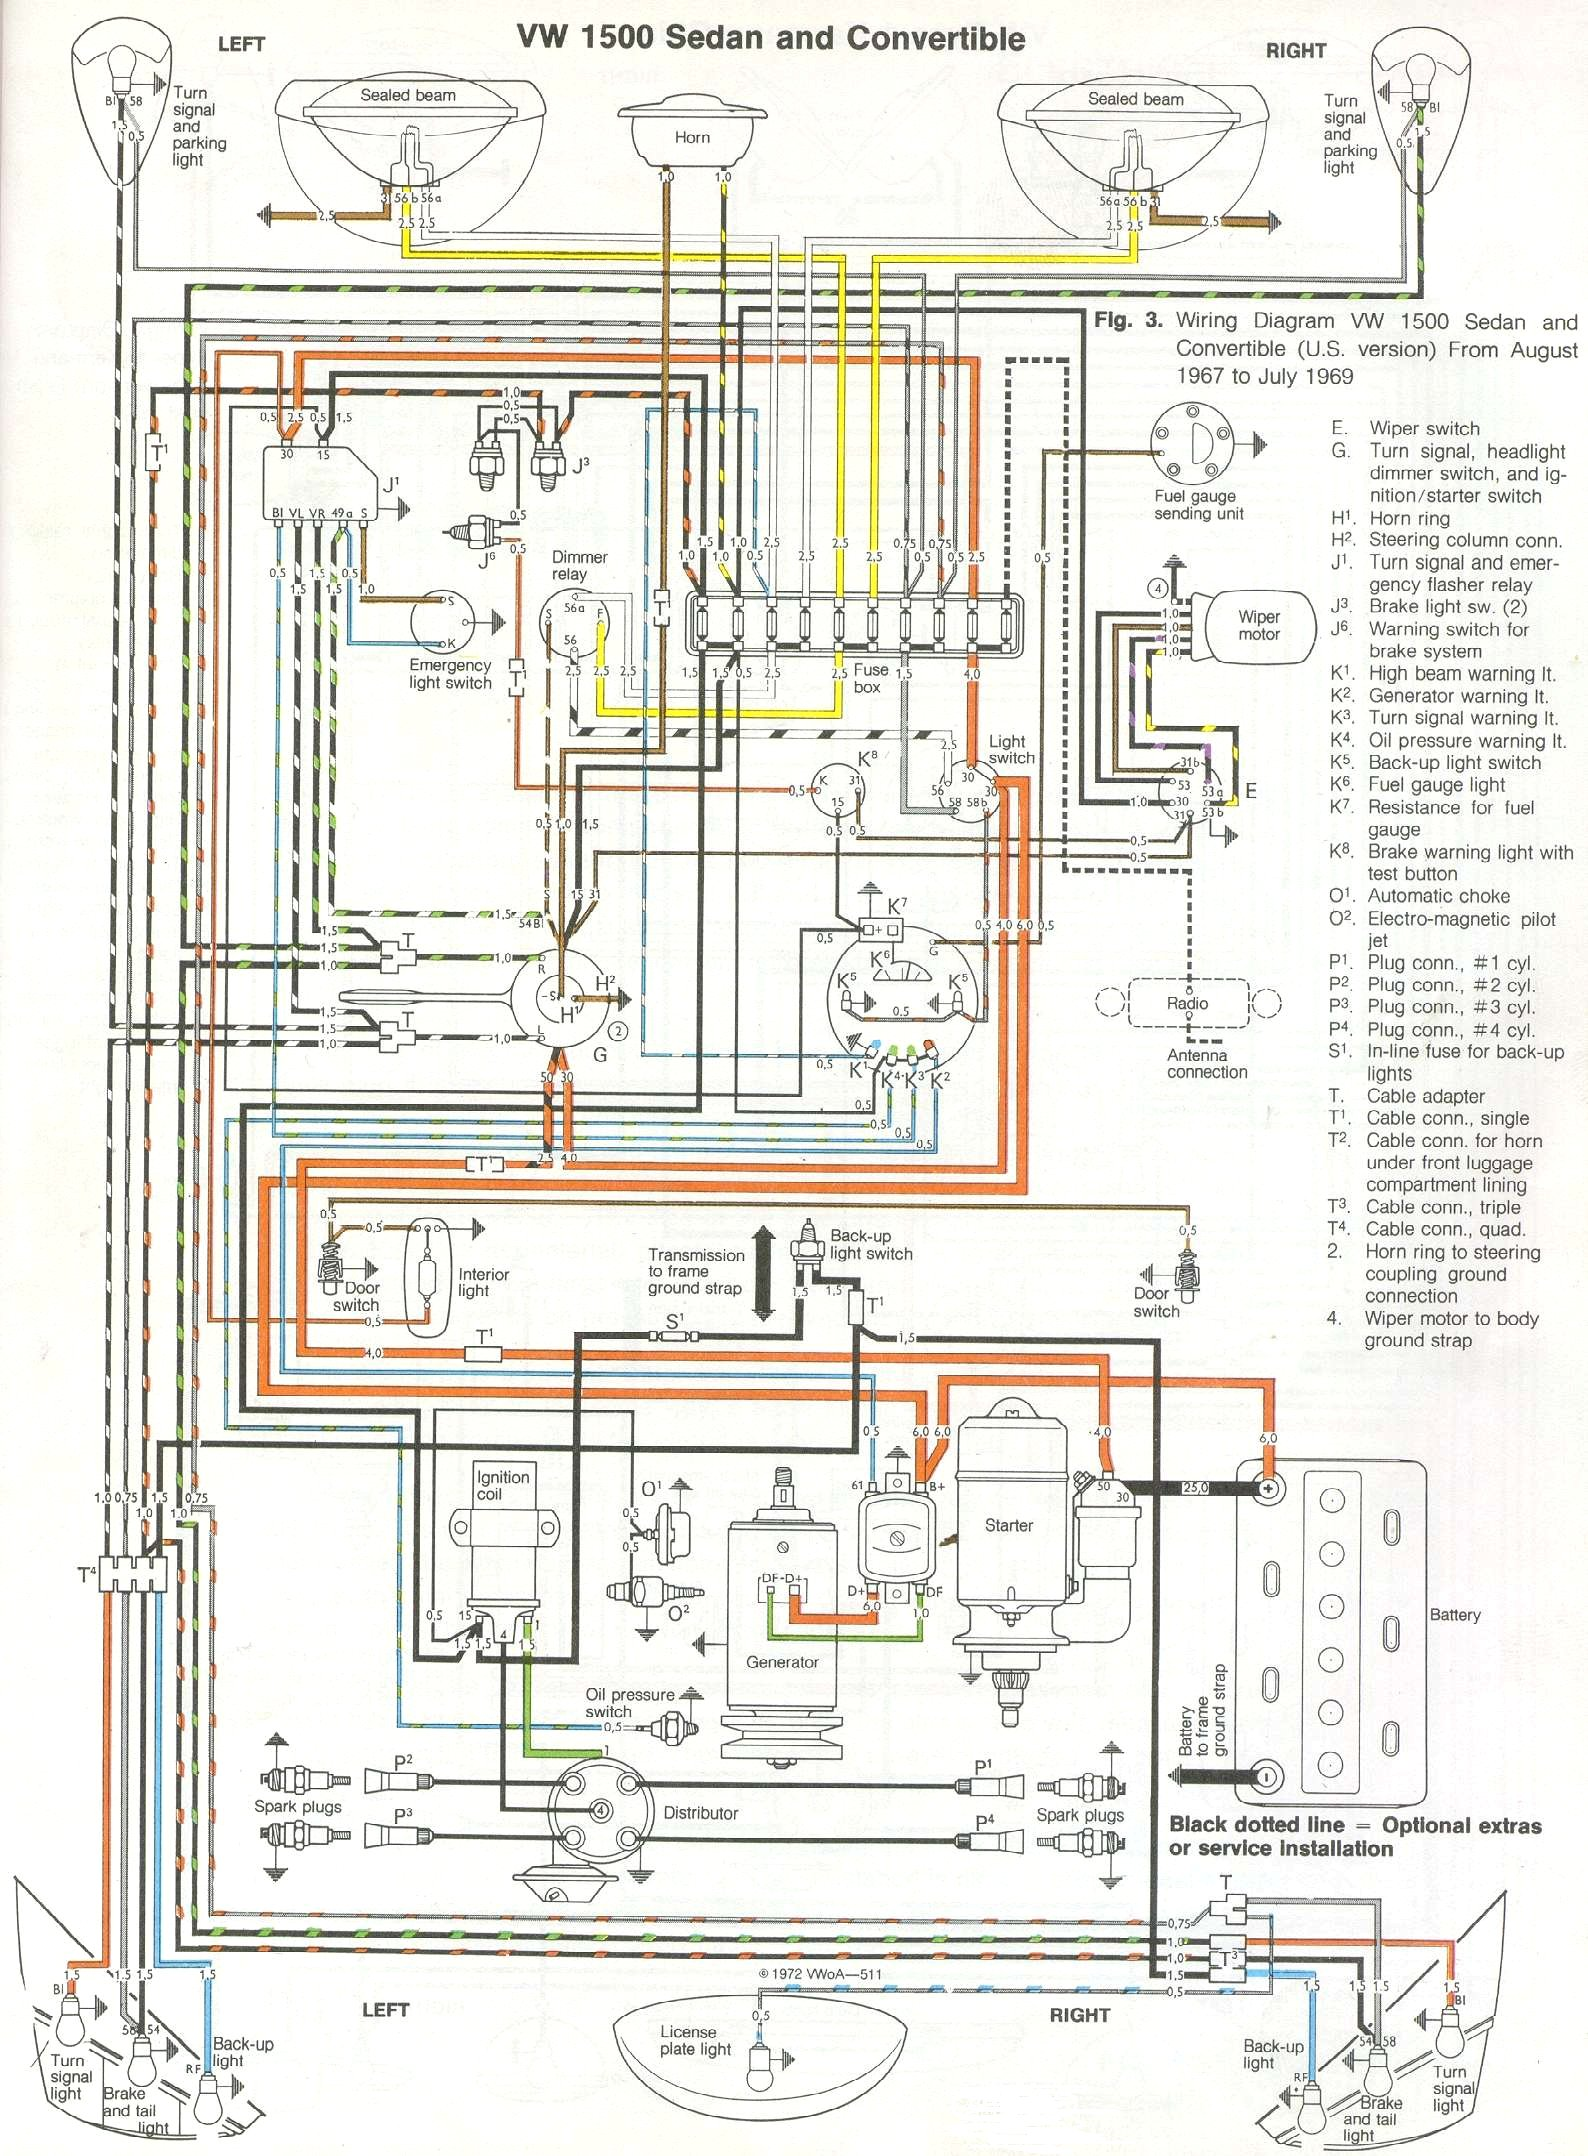 bug_6869 vw wiring harness diagram cj7 wiring harness diagram \u2022 wiring 1973 vw beetle fuse box diagram at readyjetset.co